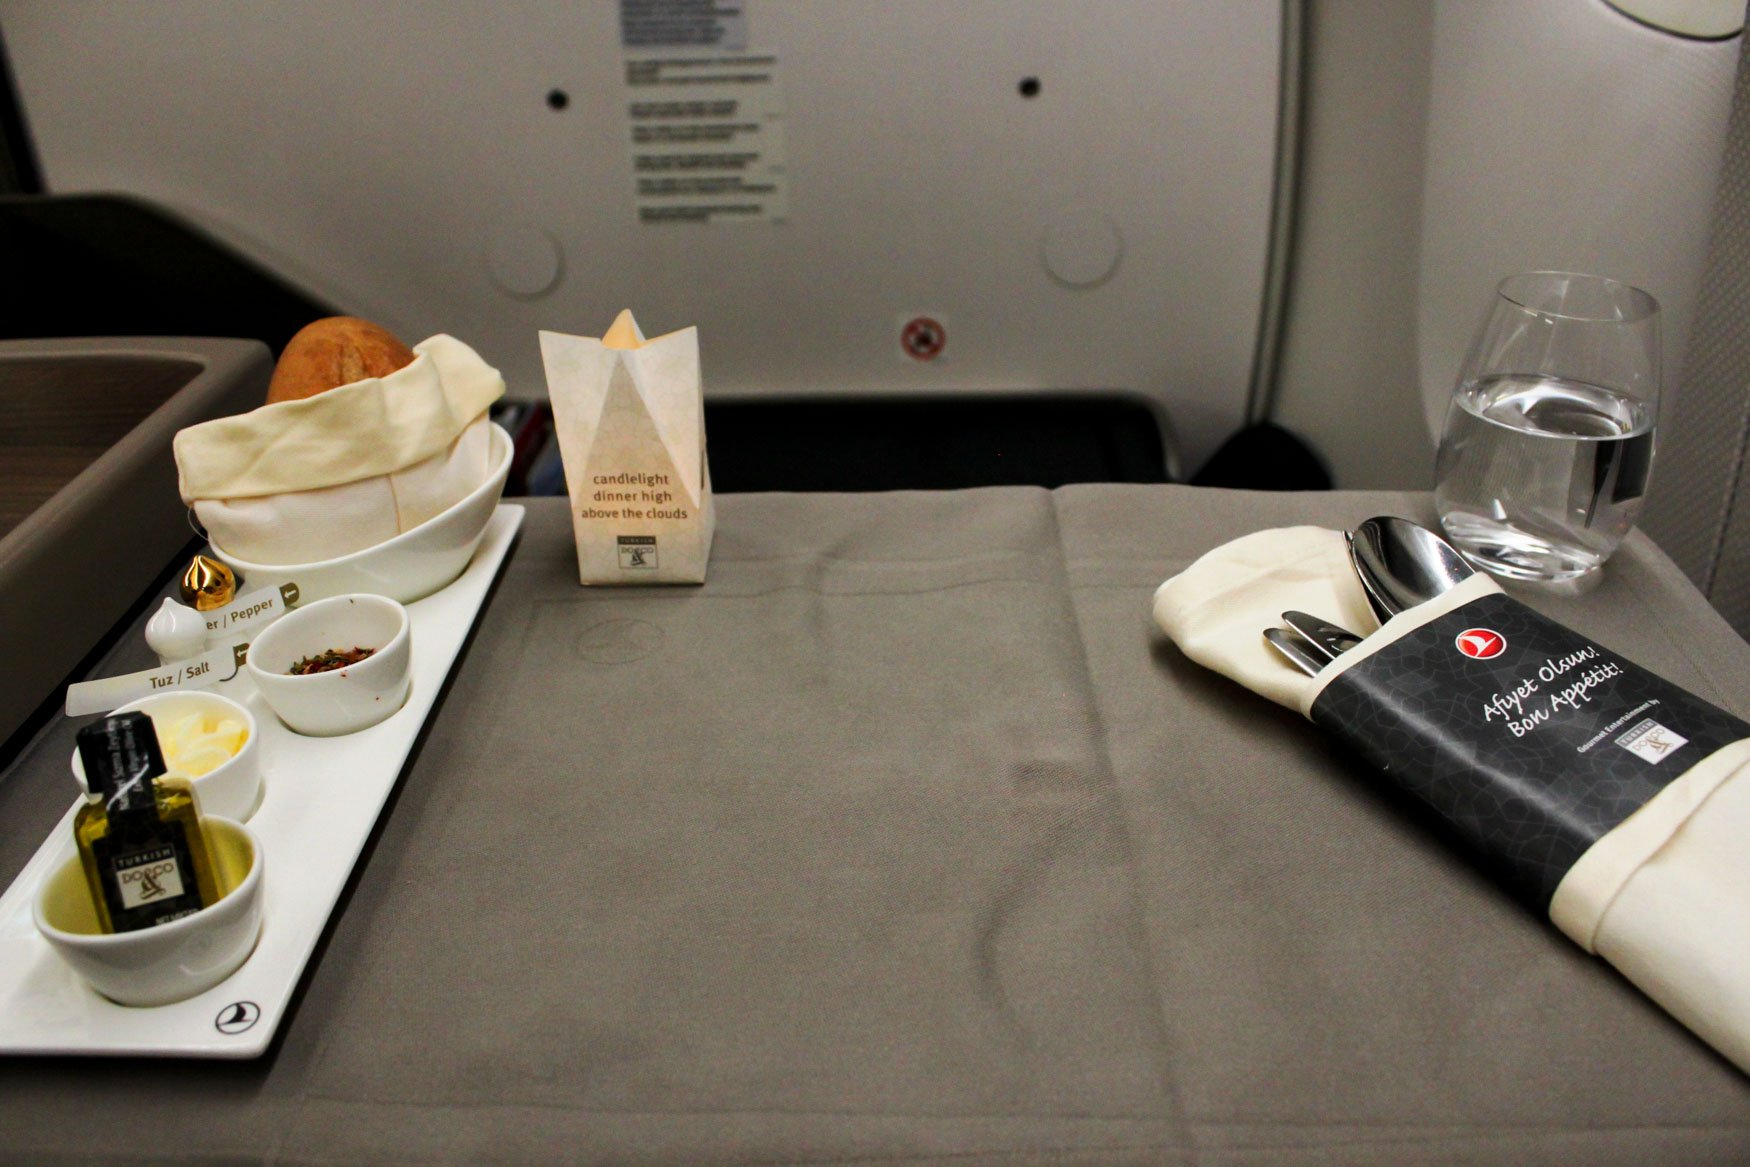 Turkish Airlines Business Class Table Setup